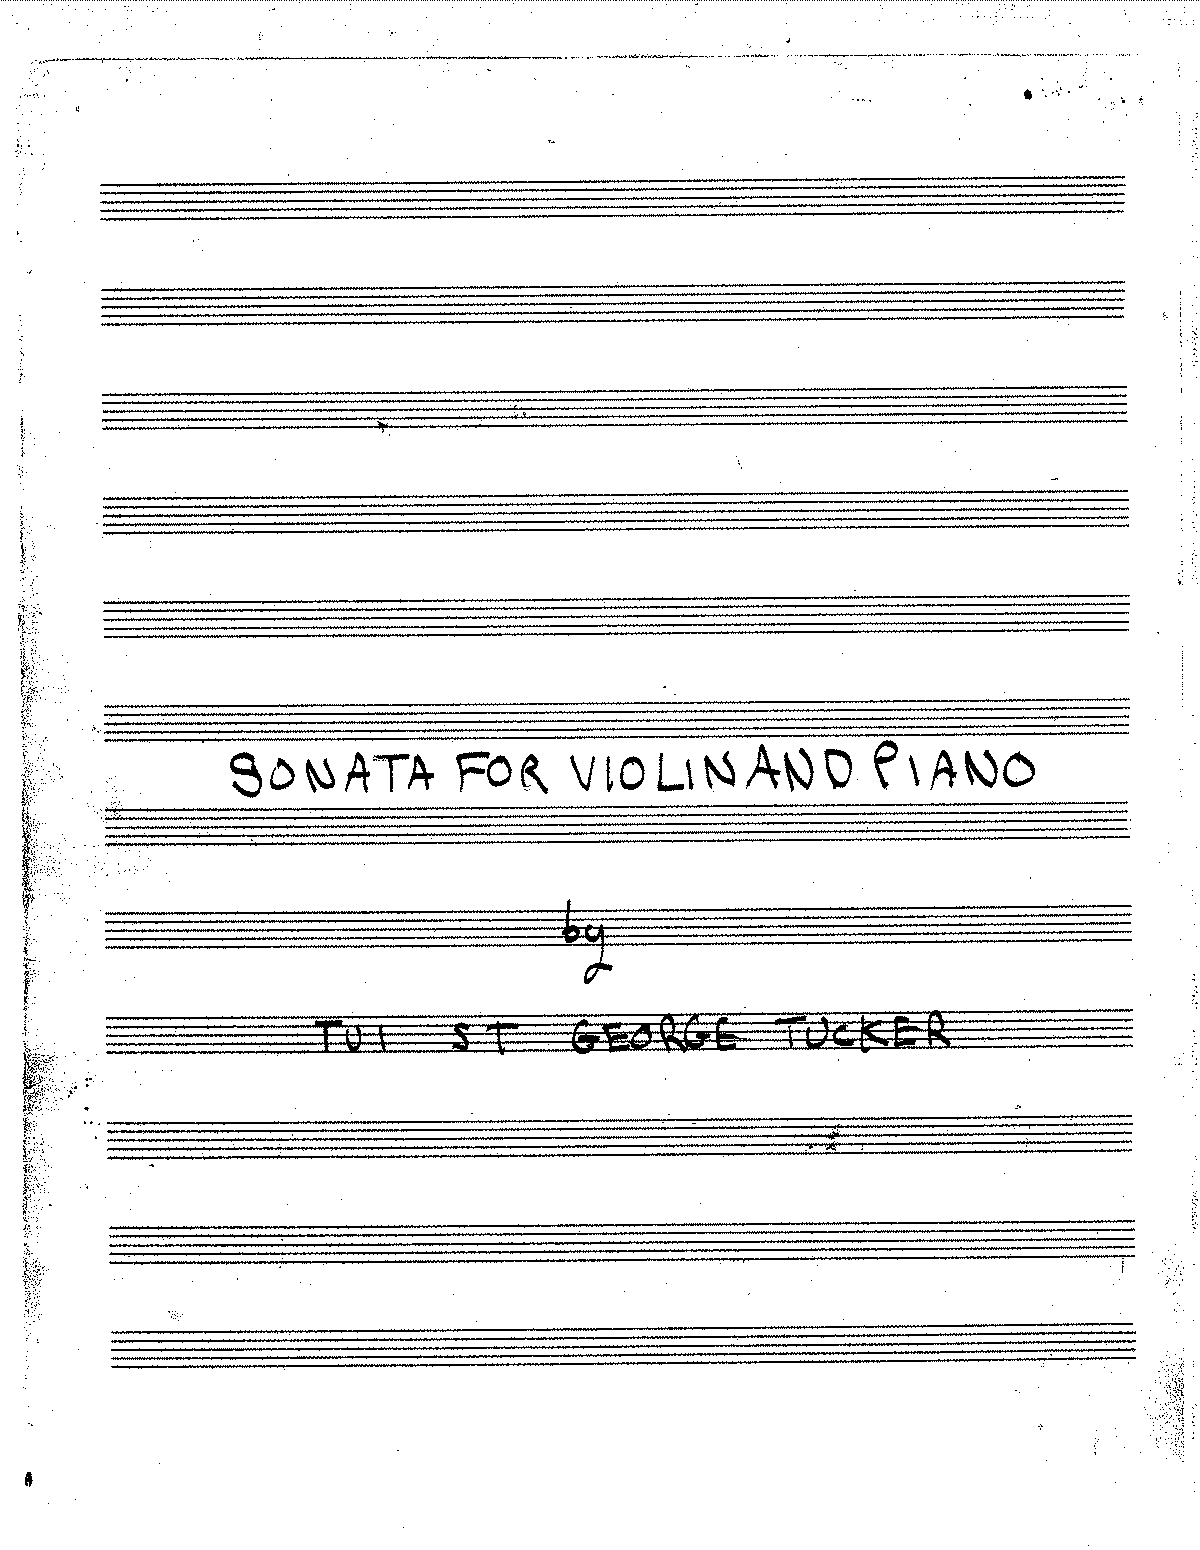 Sonata for Violin & Piano 2.pdf